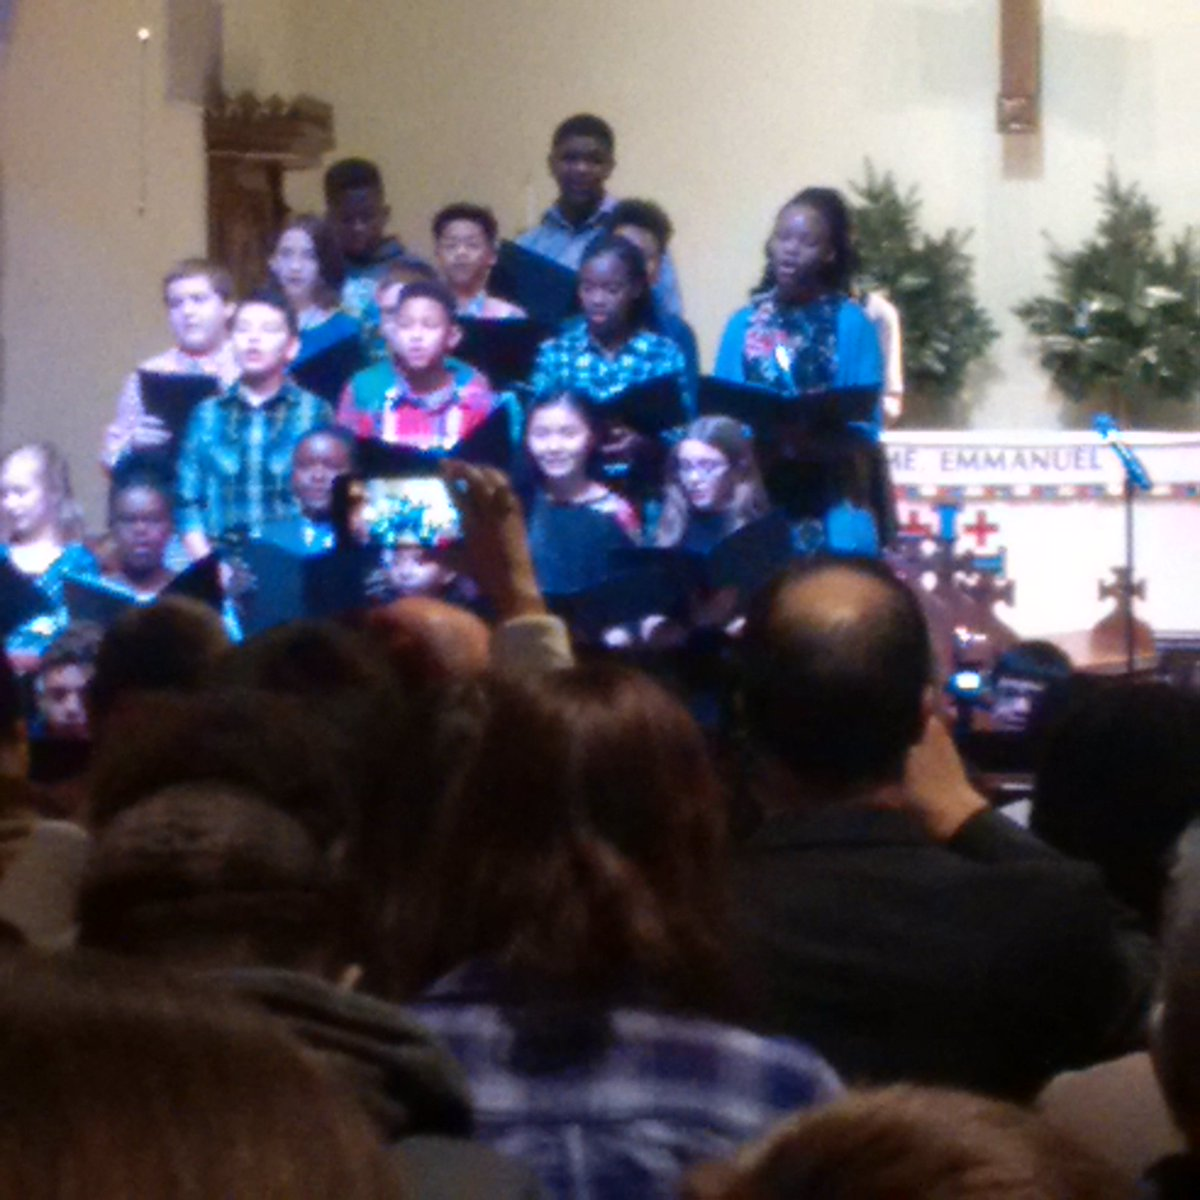 SRO as we begin our annual #Advent Program now - lots of smiling faces and wonderful music